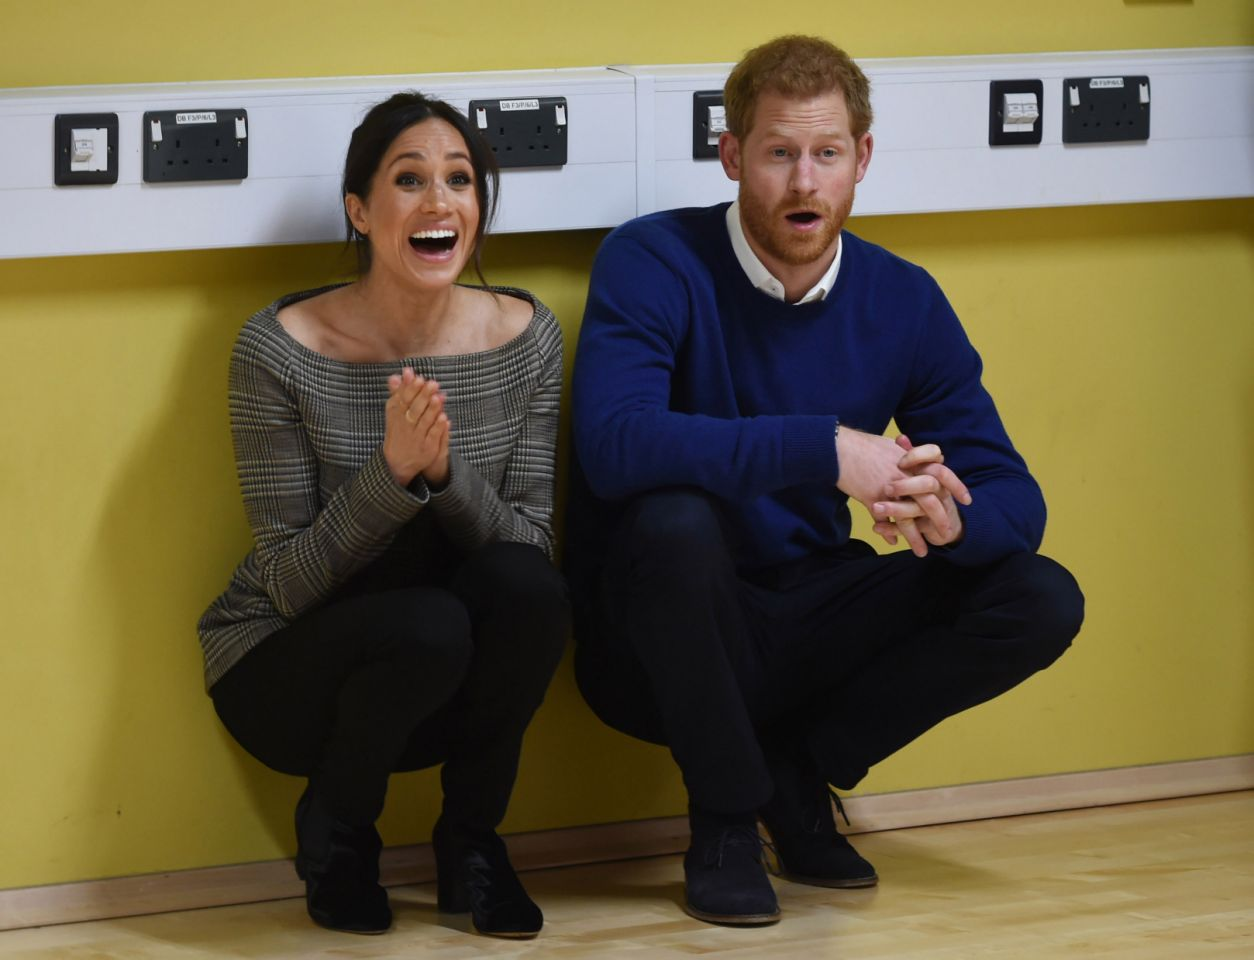 Meghan Markle has a surprising connection to husband Prince Harry's ex-girlfriend Chelsy Davy. Source Getty